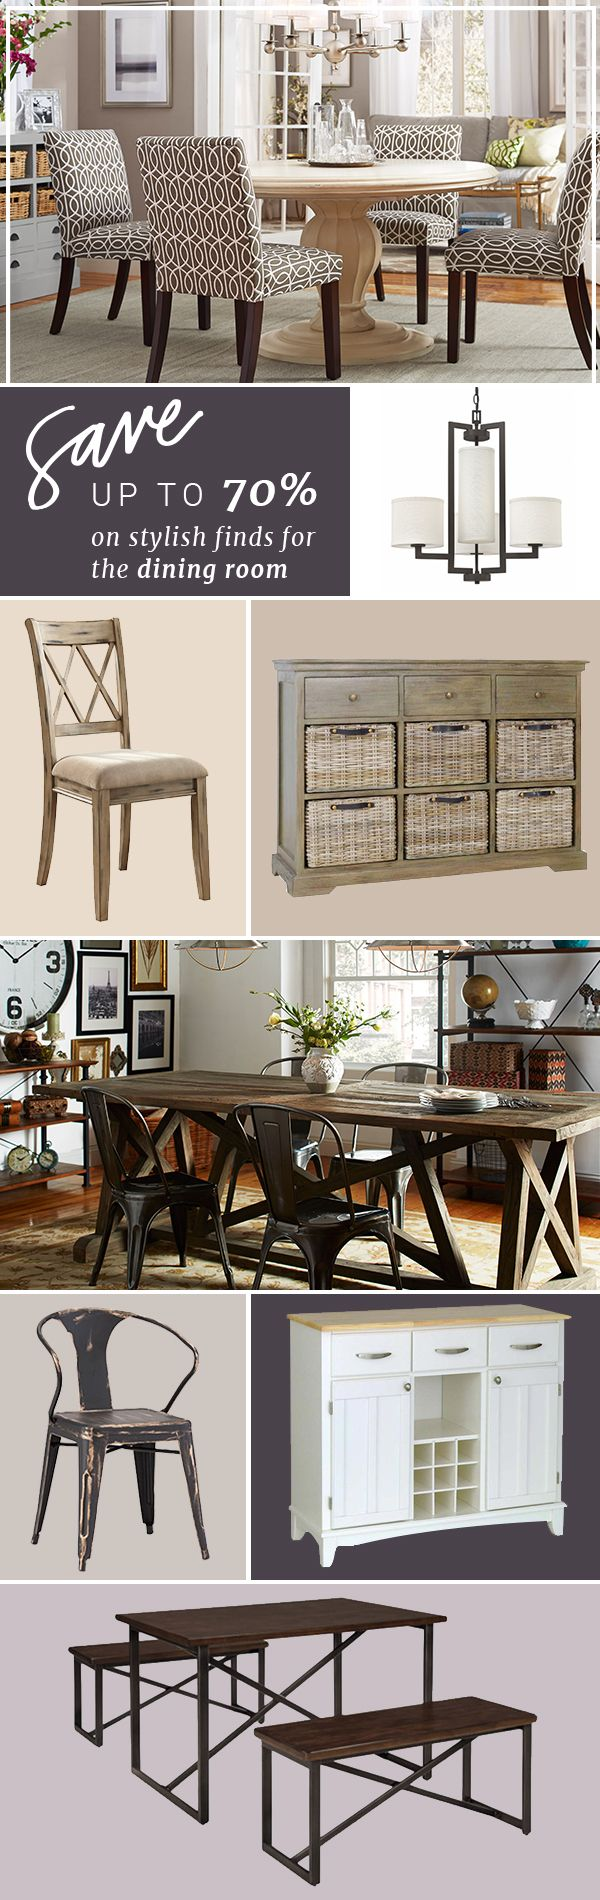 Whether you're enjoying a family dinner or hosting your closest friends, make sure your dining space is just how you like it. Pick an arrangement that fits your needs and your space; a round table can fit more in a smaller area while tables with built-in extension leaves are great for large gatherings. Don't forget to consider storage: a solid sideboard can keep your beloved china safe and act as a serving space for holiday feasts, too. Sign up at Joss & Main and get up to 70% off!